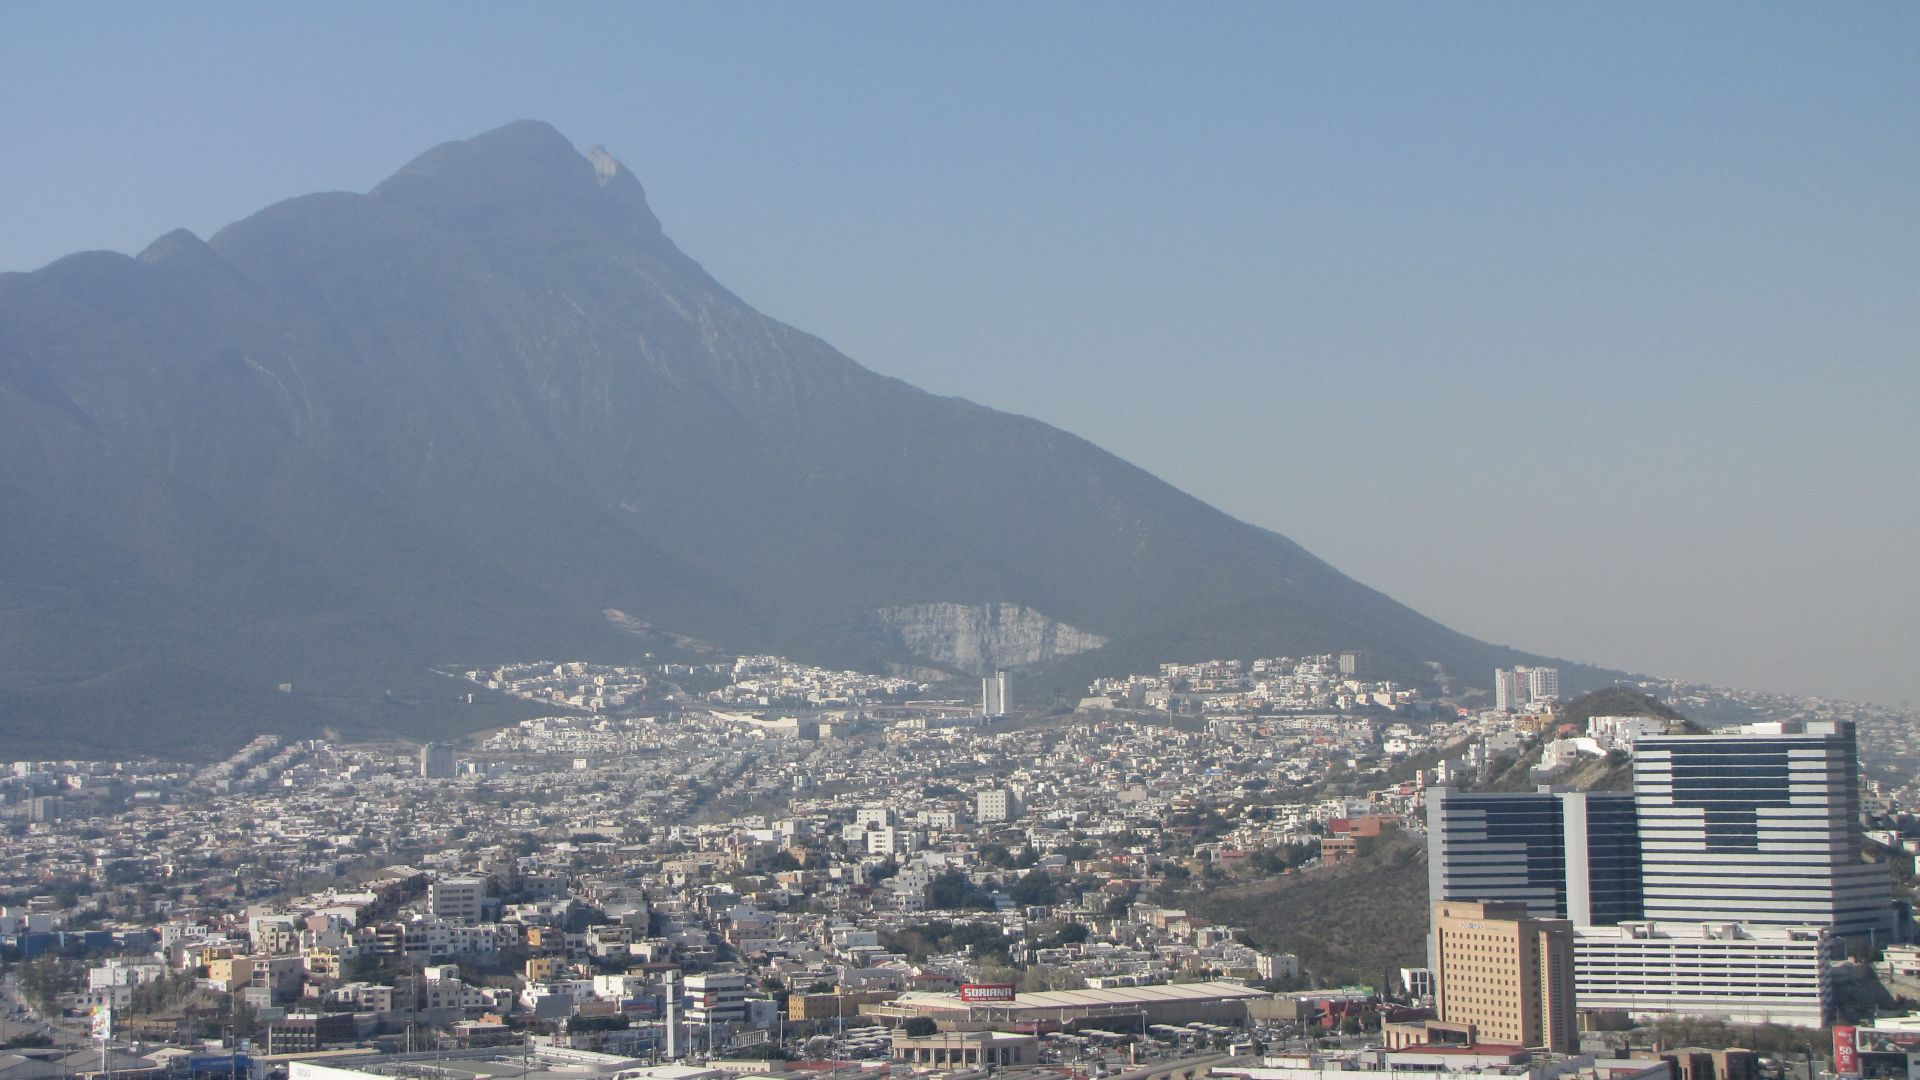 Monterrey, NL, Mexico - the city in its impressive setting